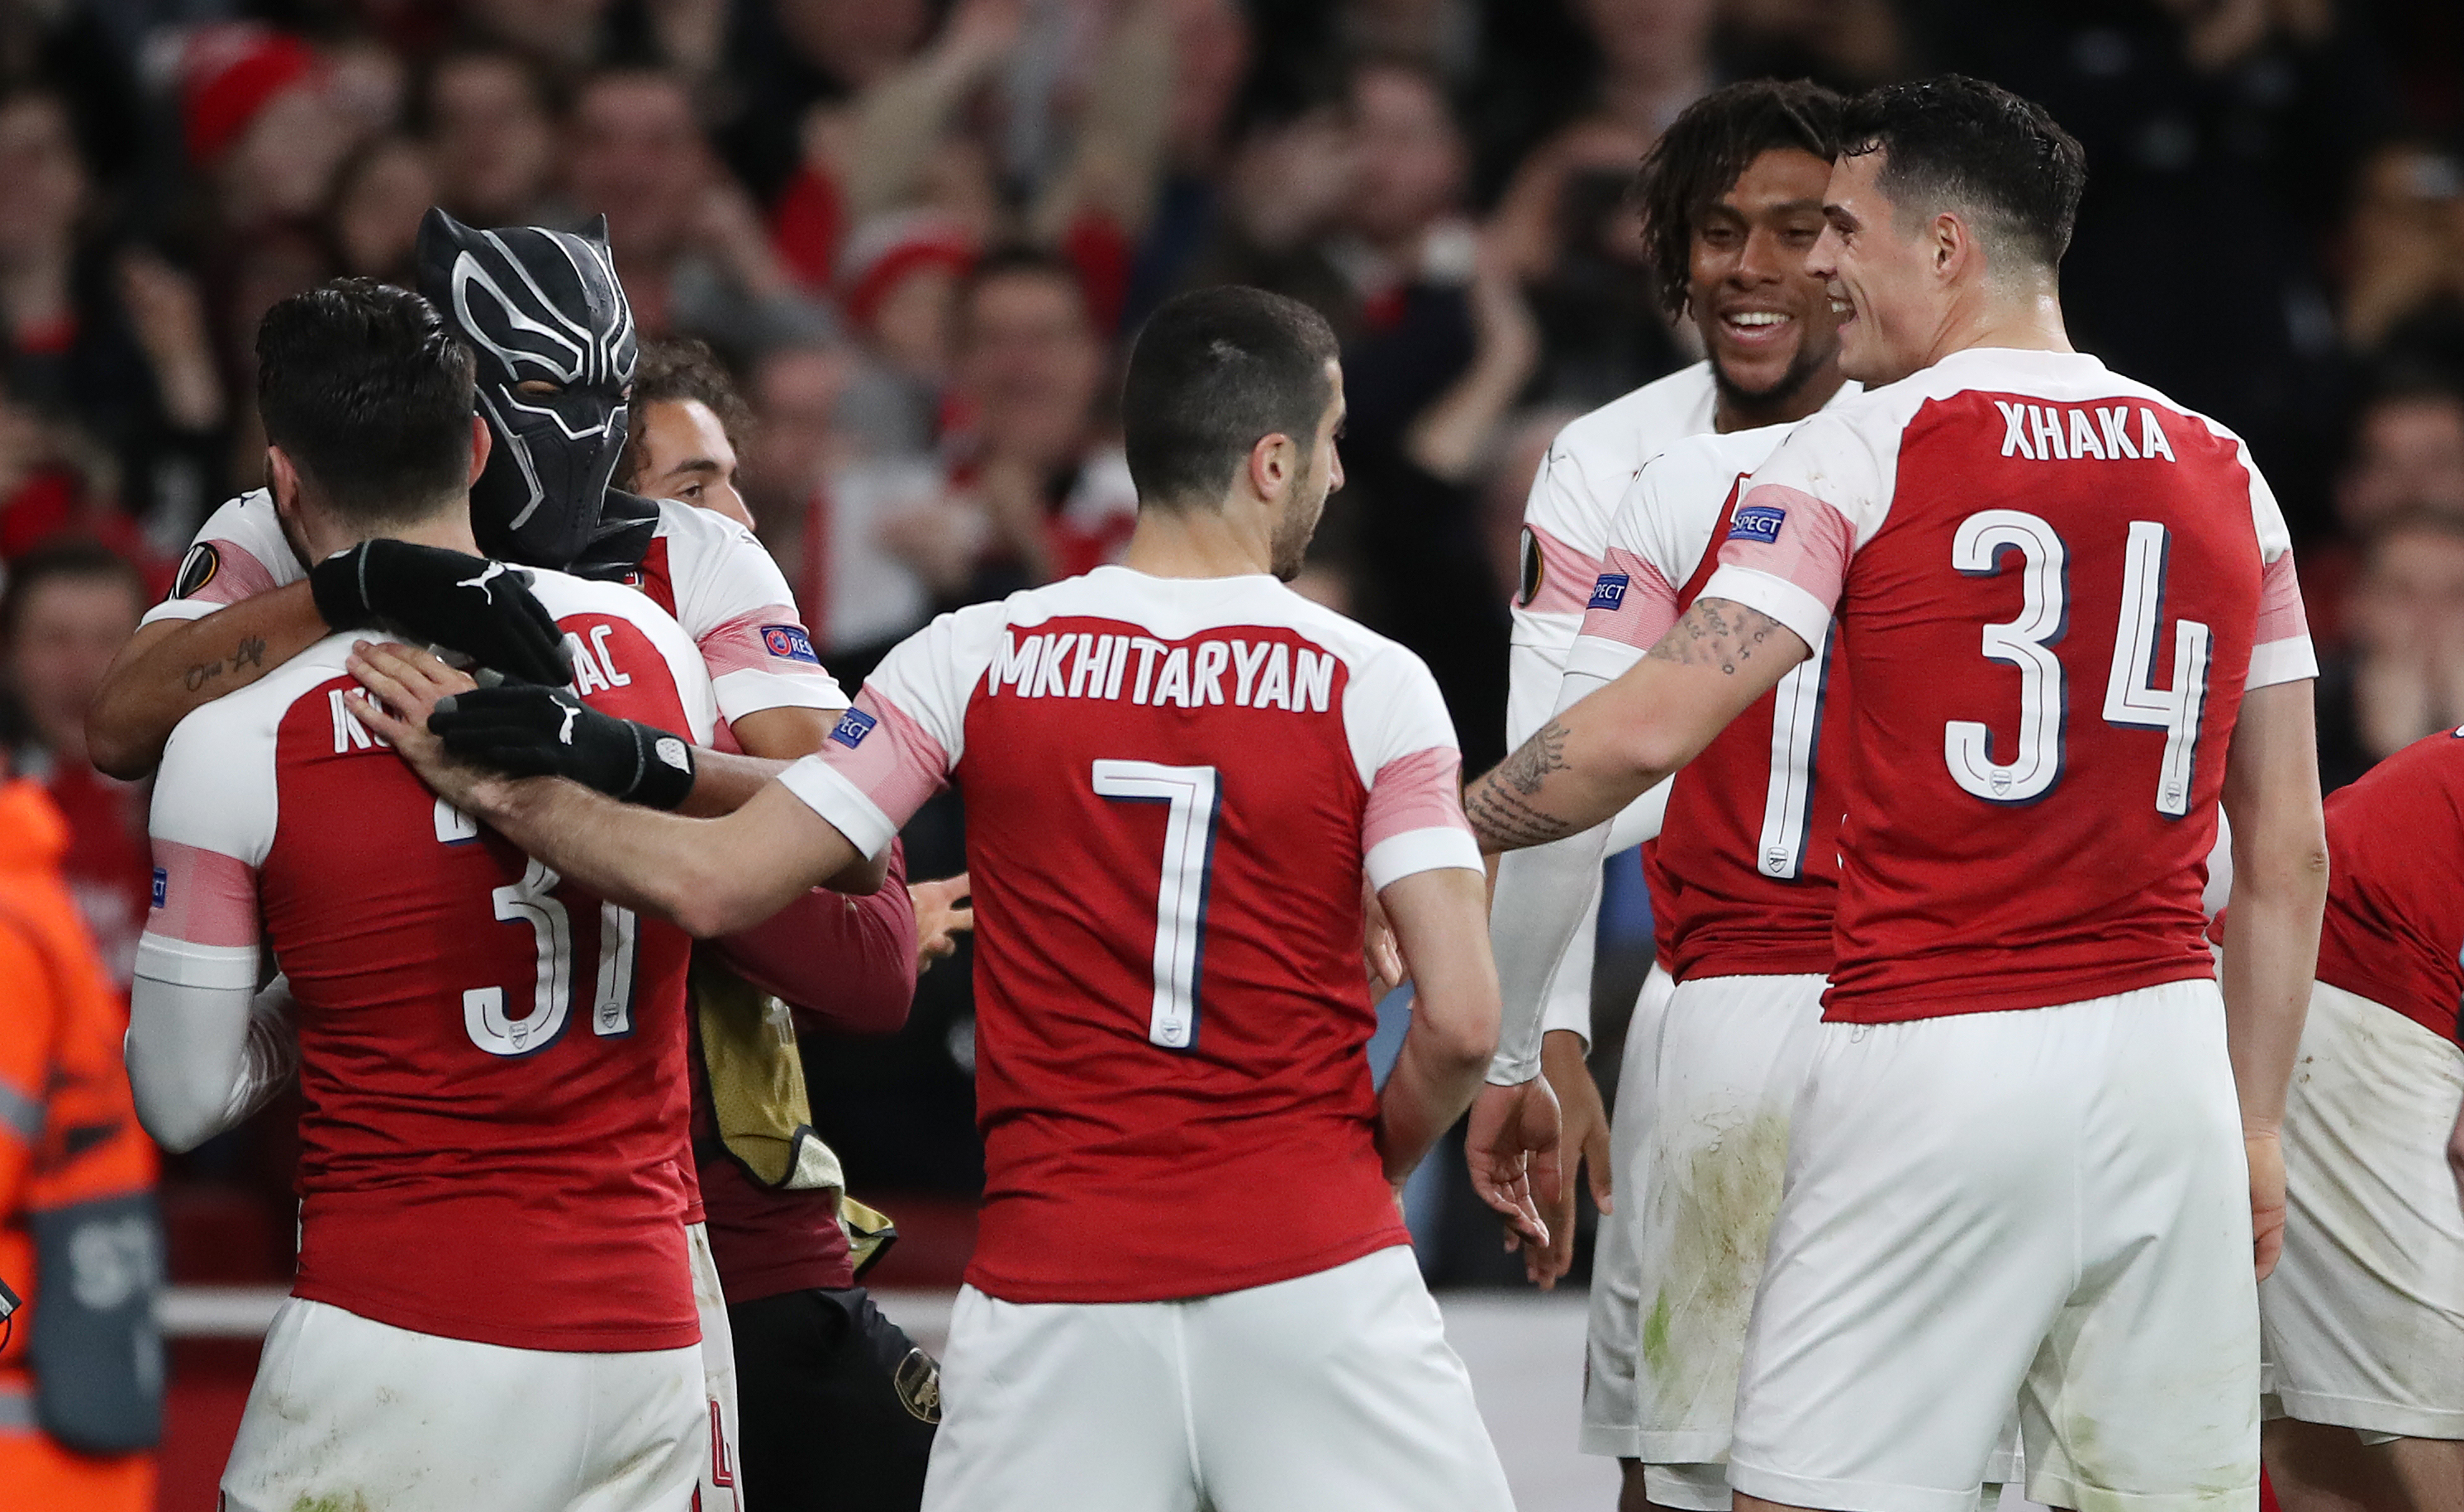 Arsenal turned the tie around against Rennes